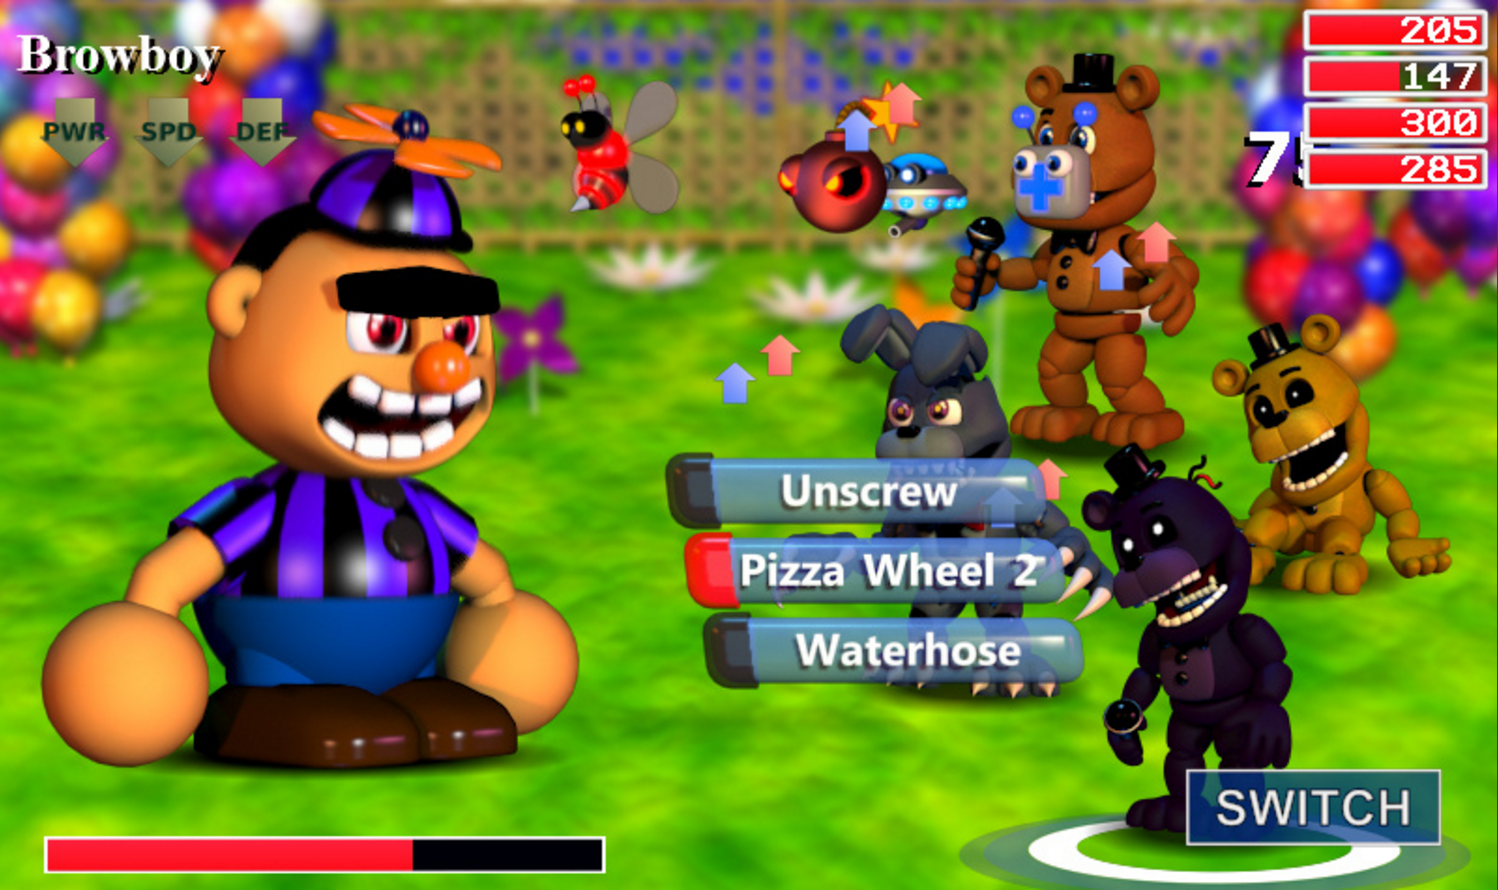 Five Nights at Freddy's World is back, and it's free | PC Gamer